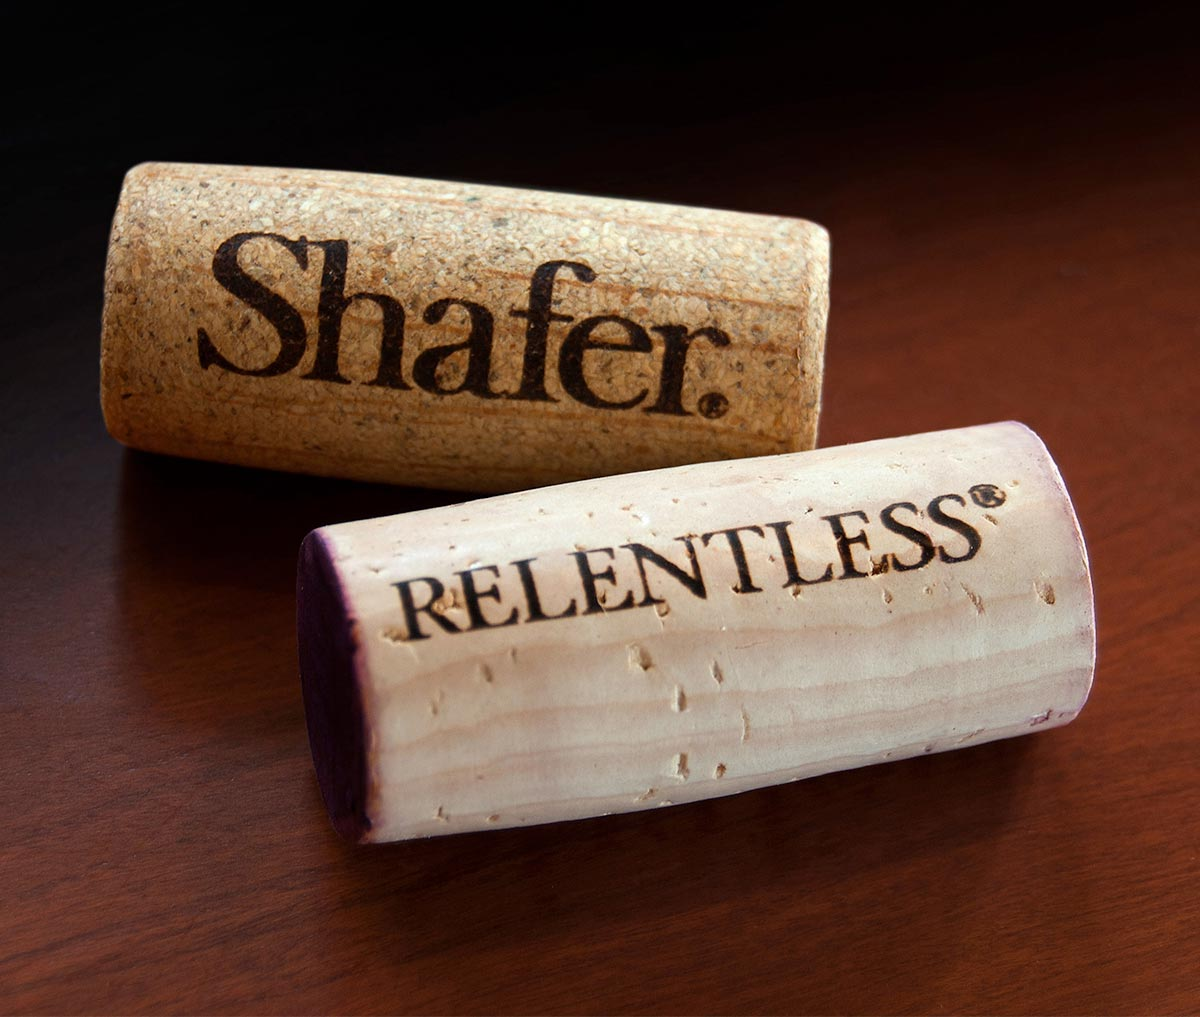 Shafer corks